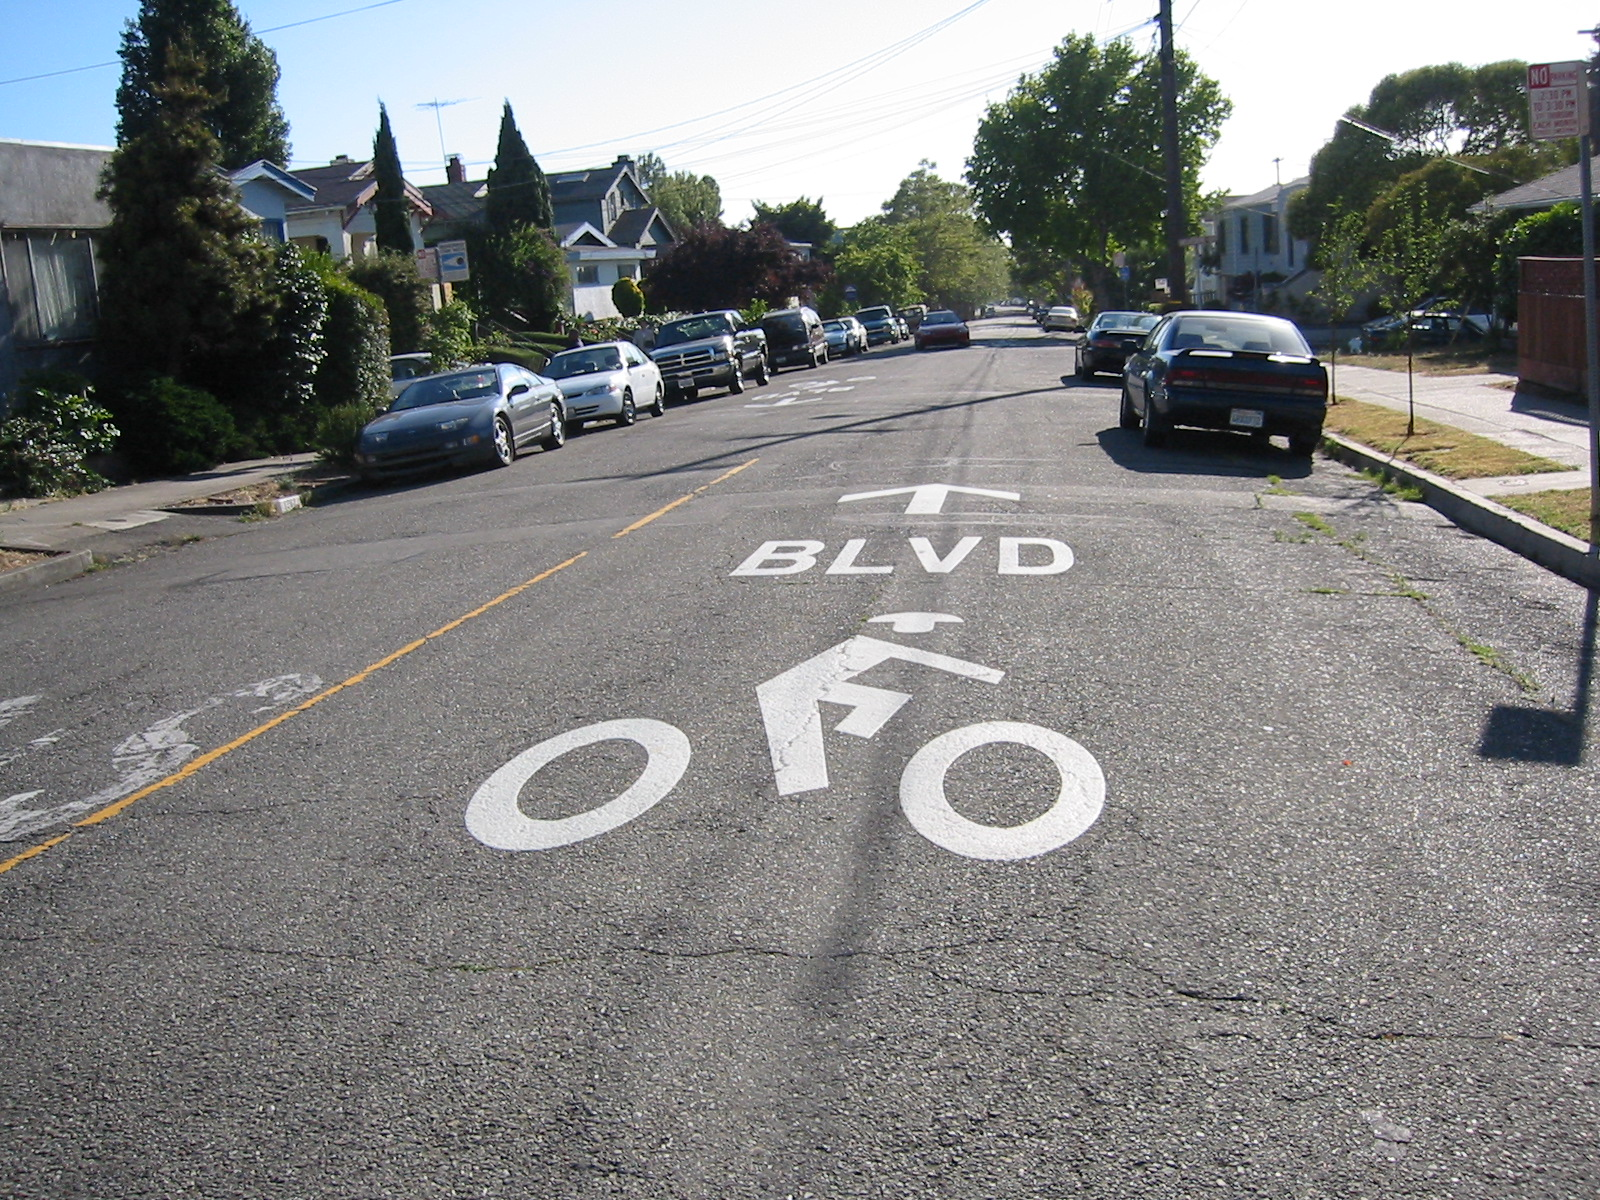 Bicycle Boulevard Pavement Marking - Berkeley, CABerkeley uses large pavement stencils with BLVD text to indicate that people on bicycles have priority.